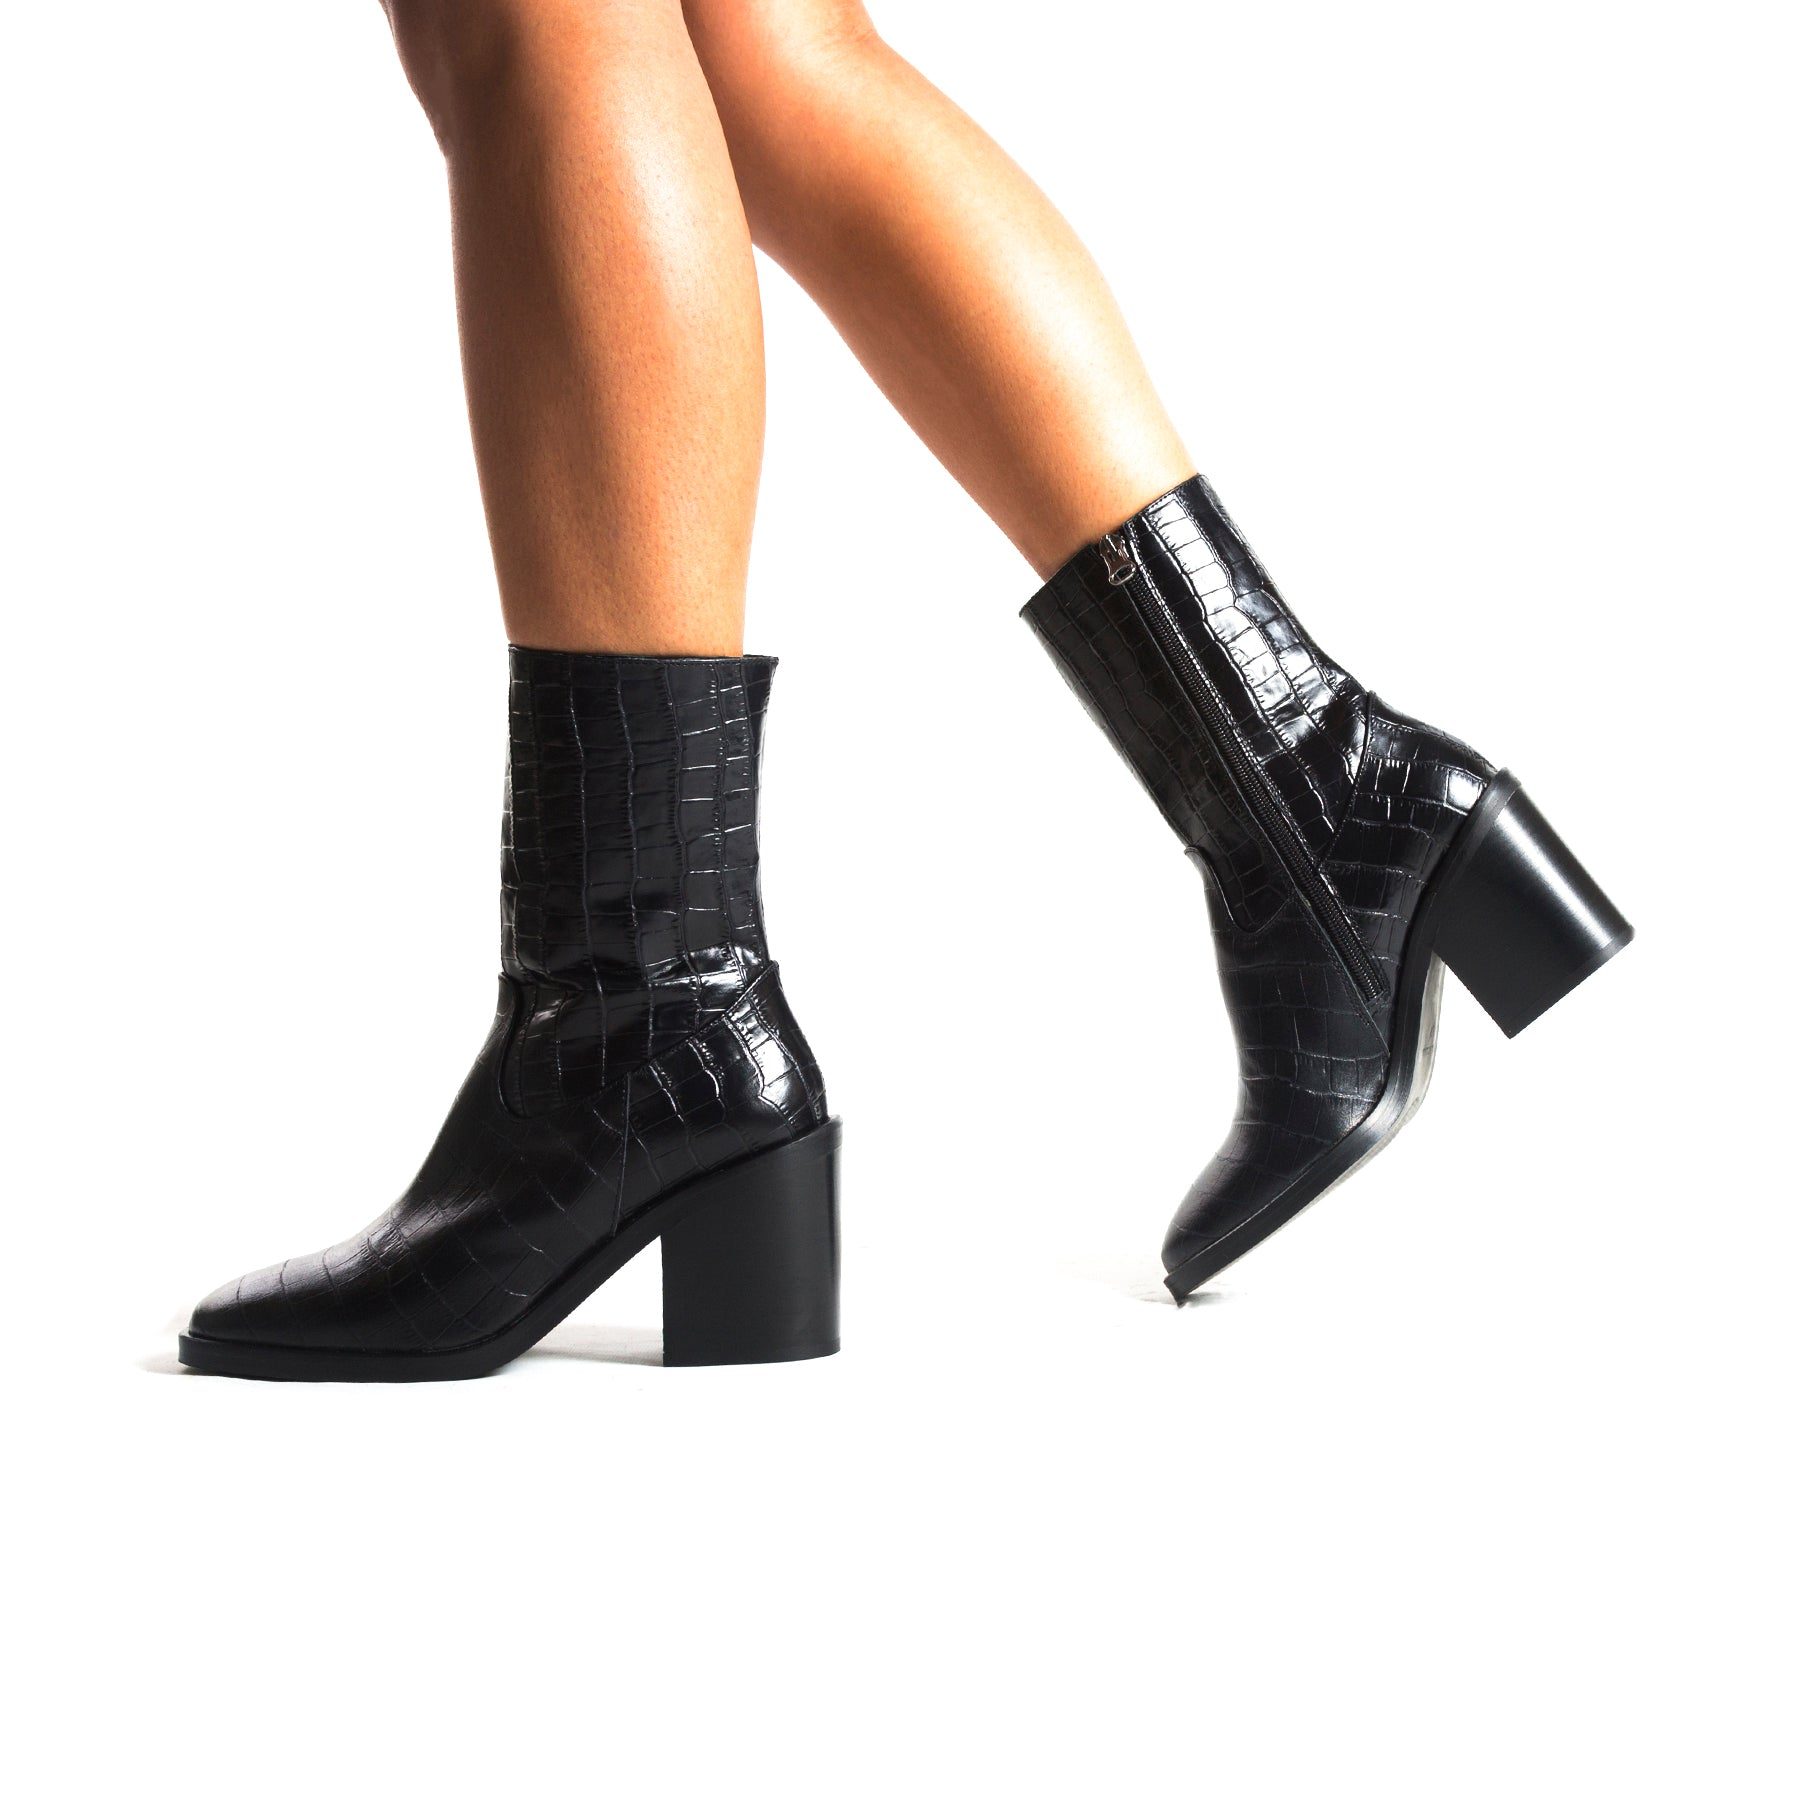 Maralik Black Croco Booties